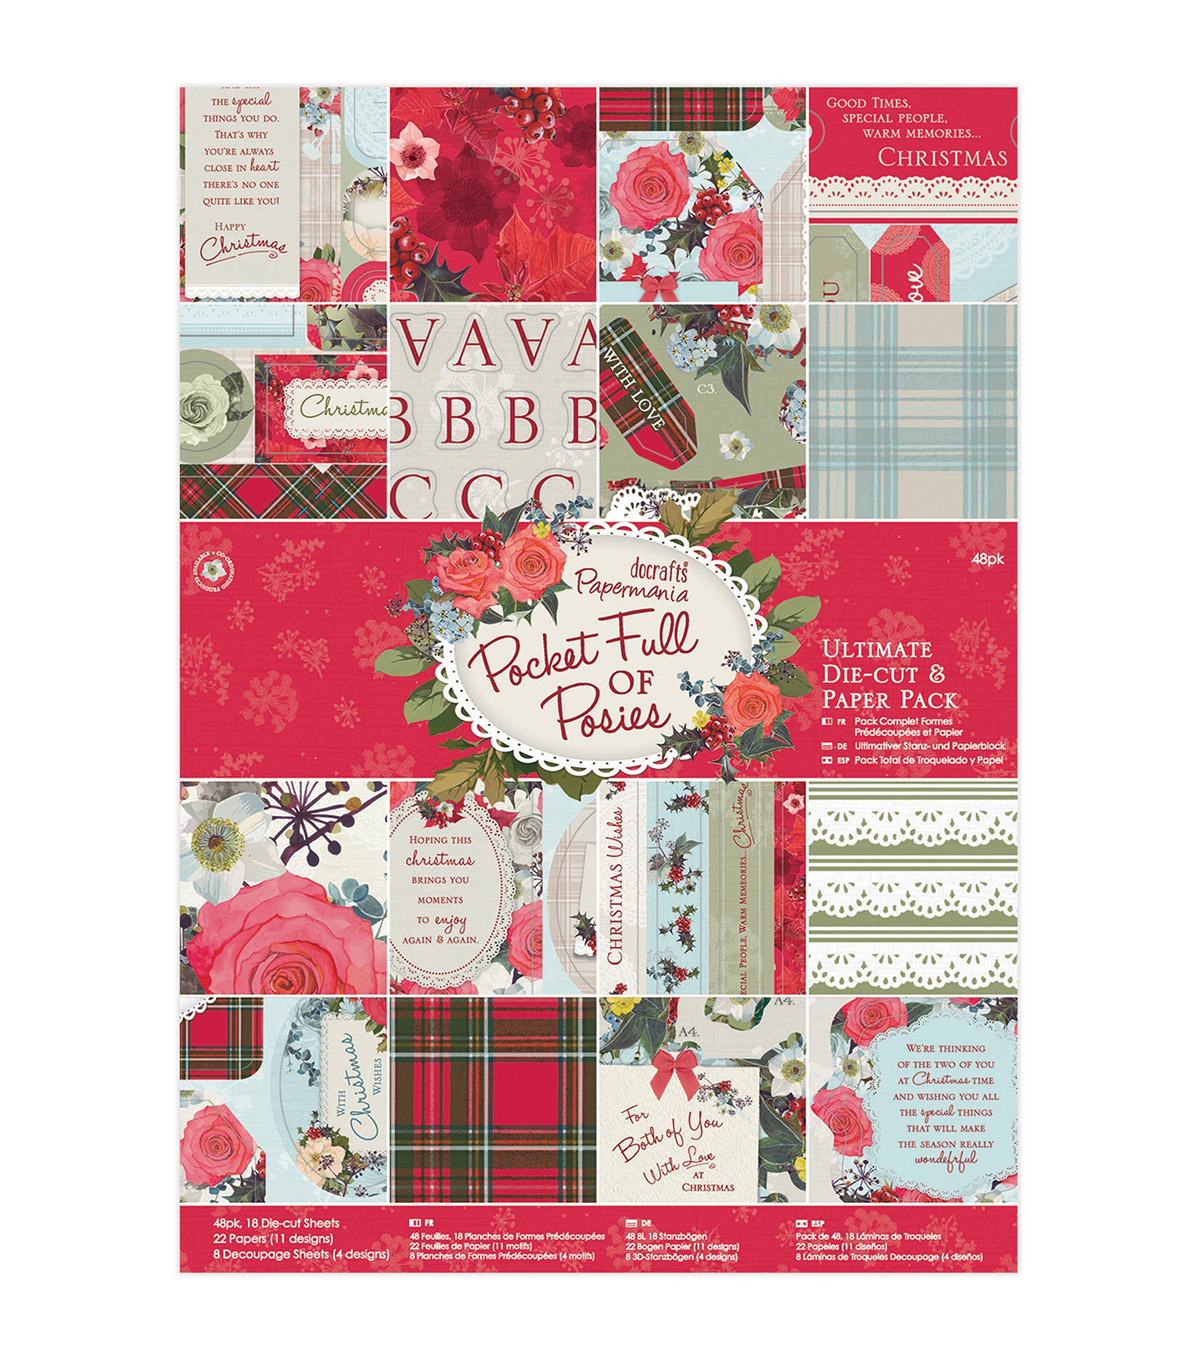 Papermania Pocket Full Of Posies Ultimate Die-Cuts & Paper Pack